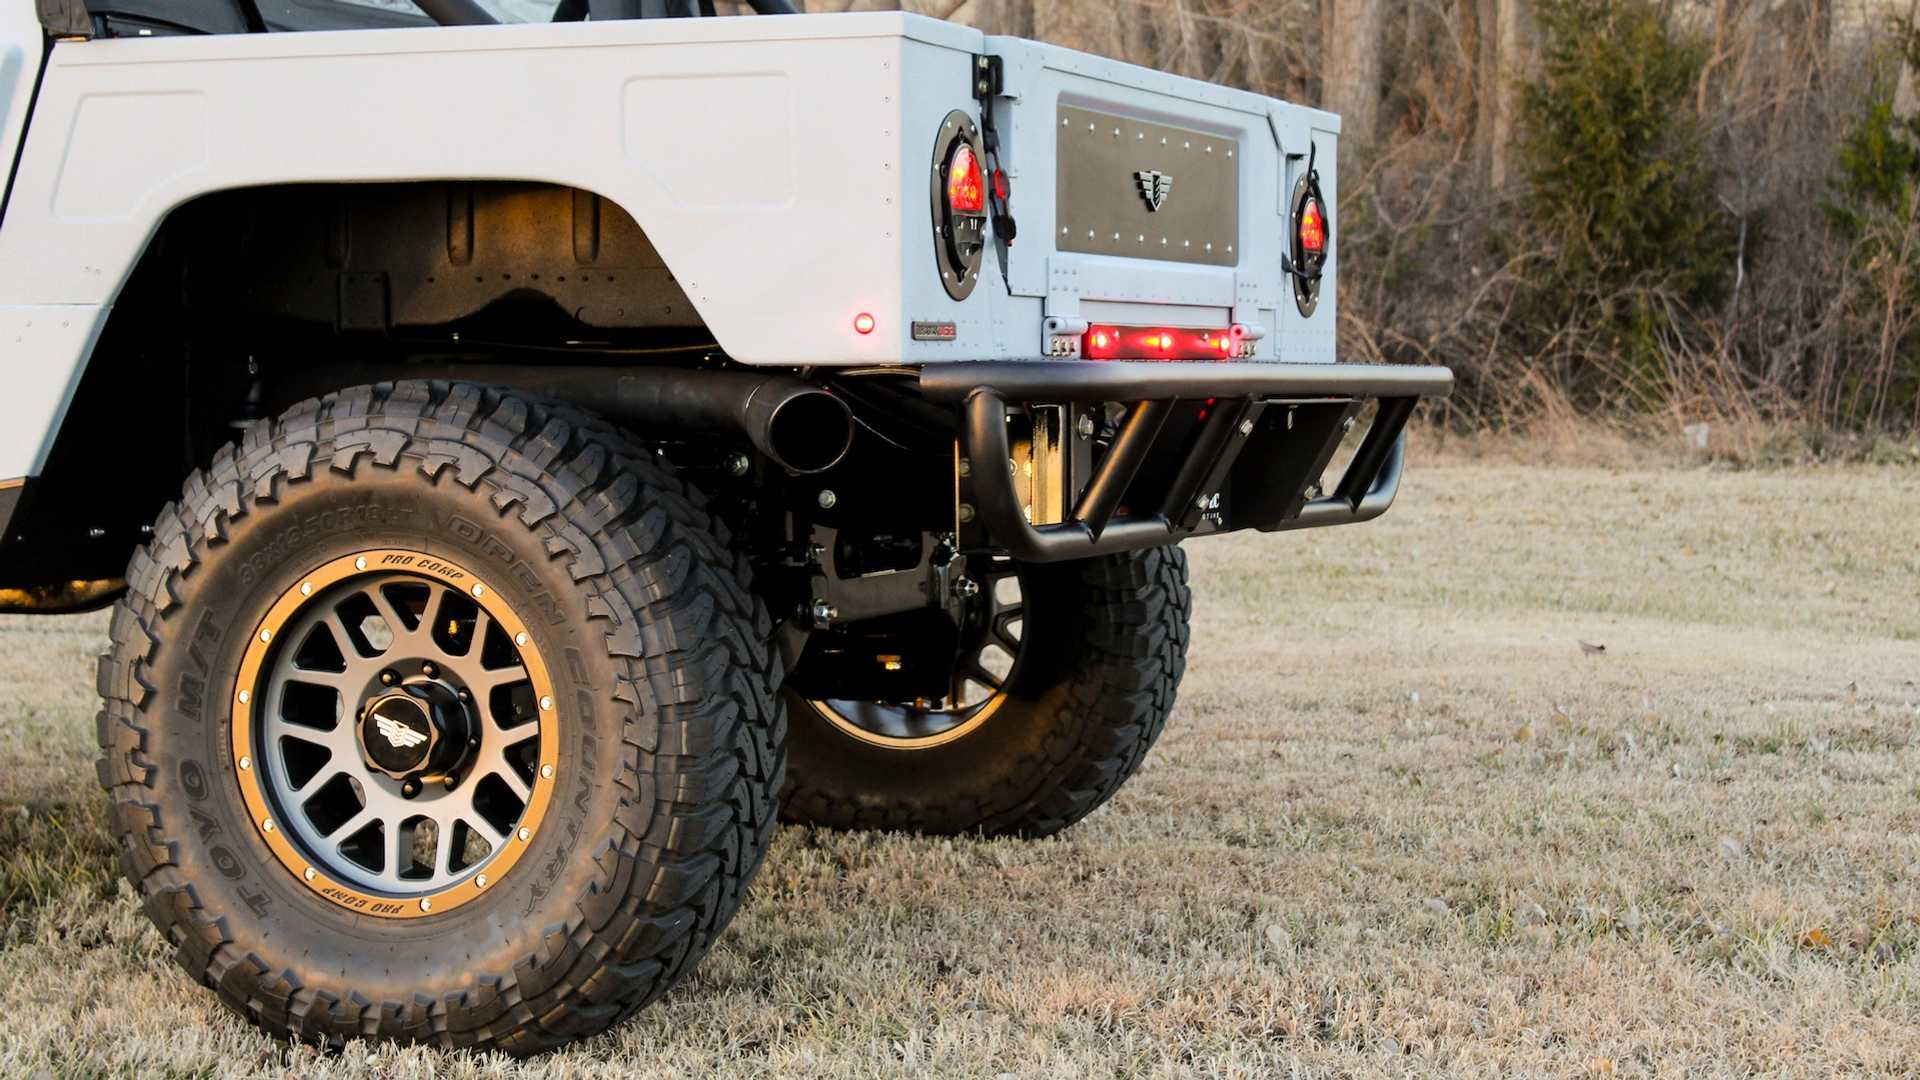 Is this $250,000 Mil-Spec Hummer A Beauty Or A Beast?